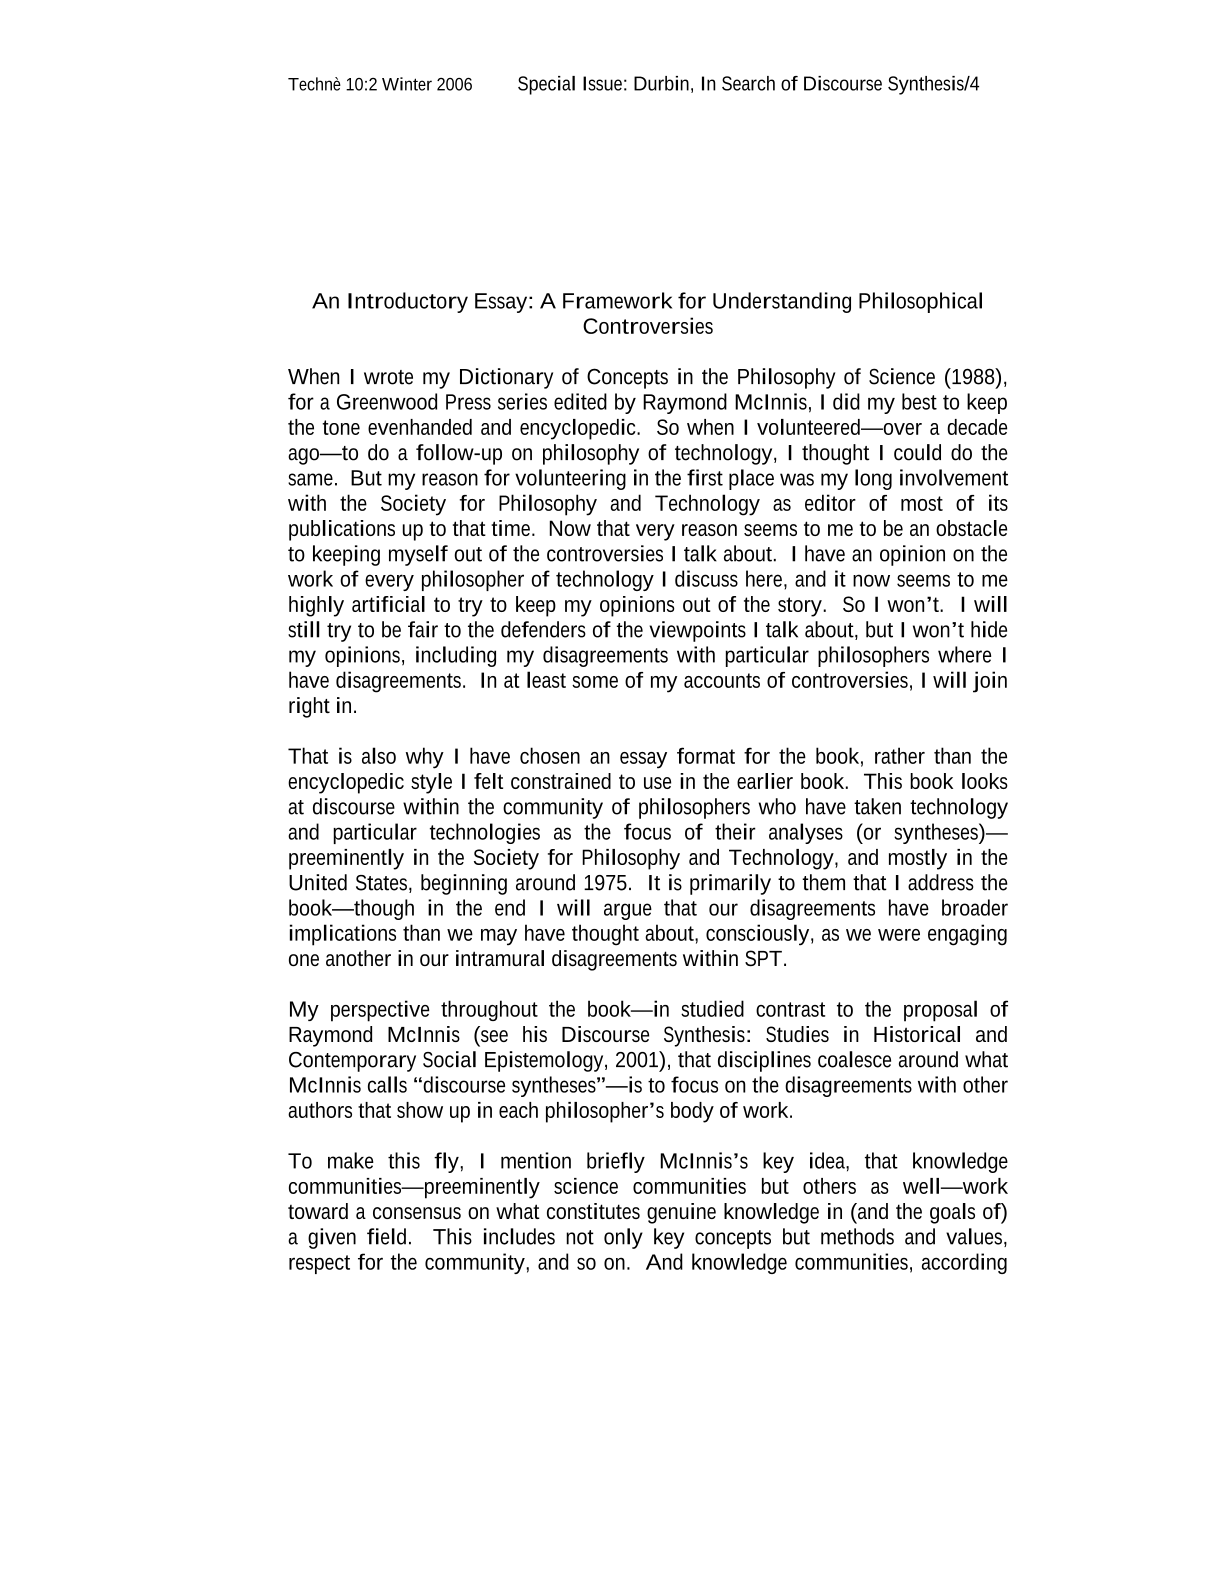 Heroic Essay Document Is Being Loaded  Career Choice Essay also Process Explanation Essay An Introductory Essay A Framework For Understanding Philosophical  Structure Of A Critical Essay